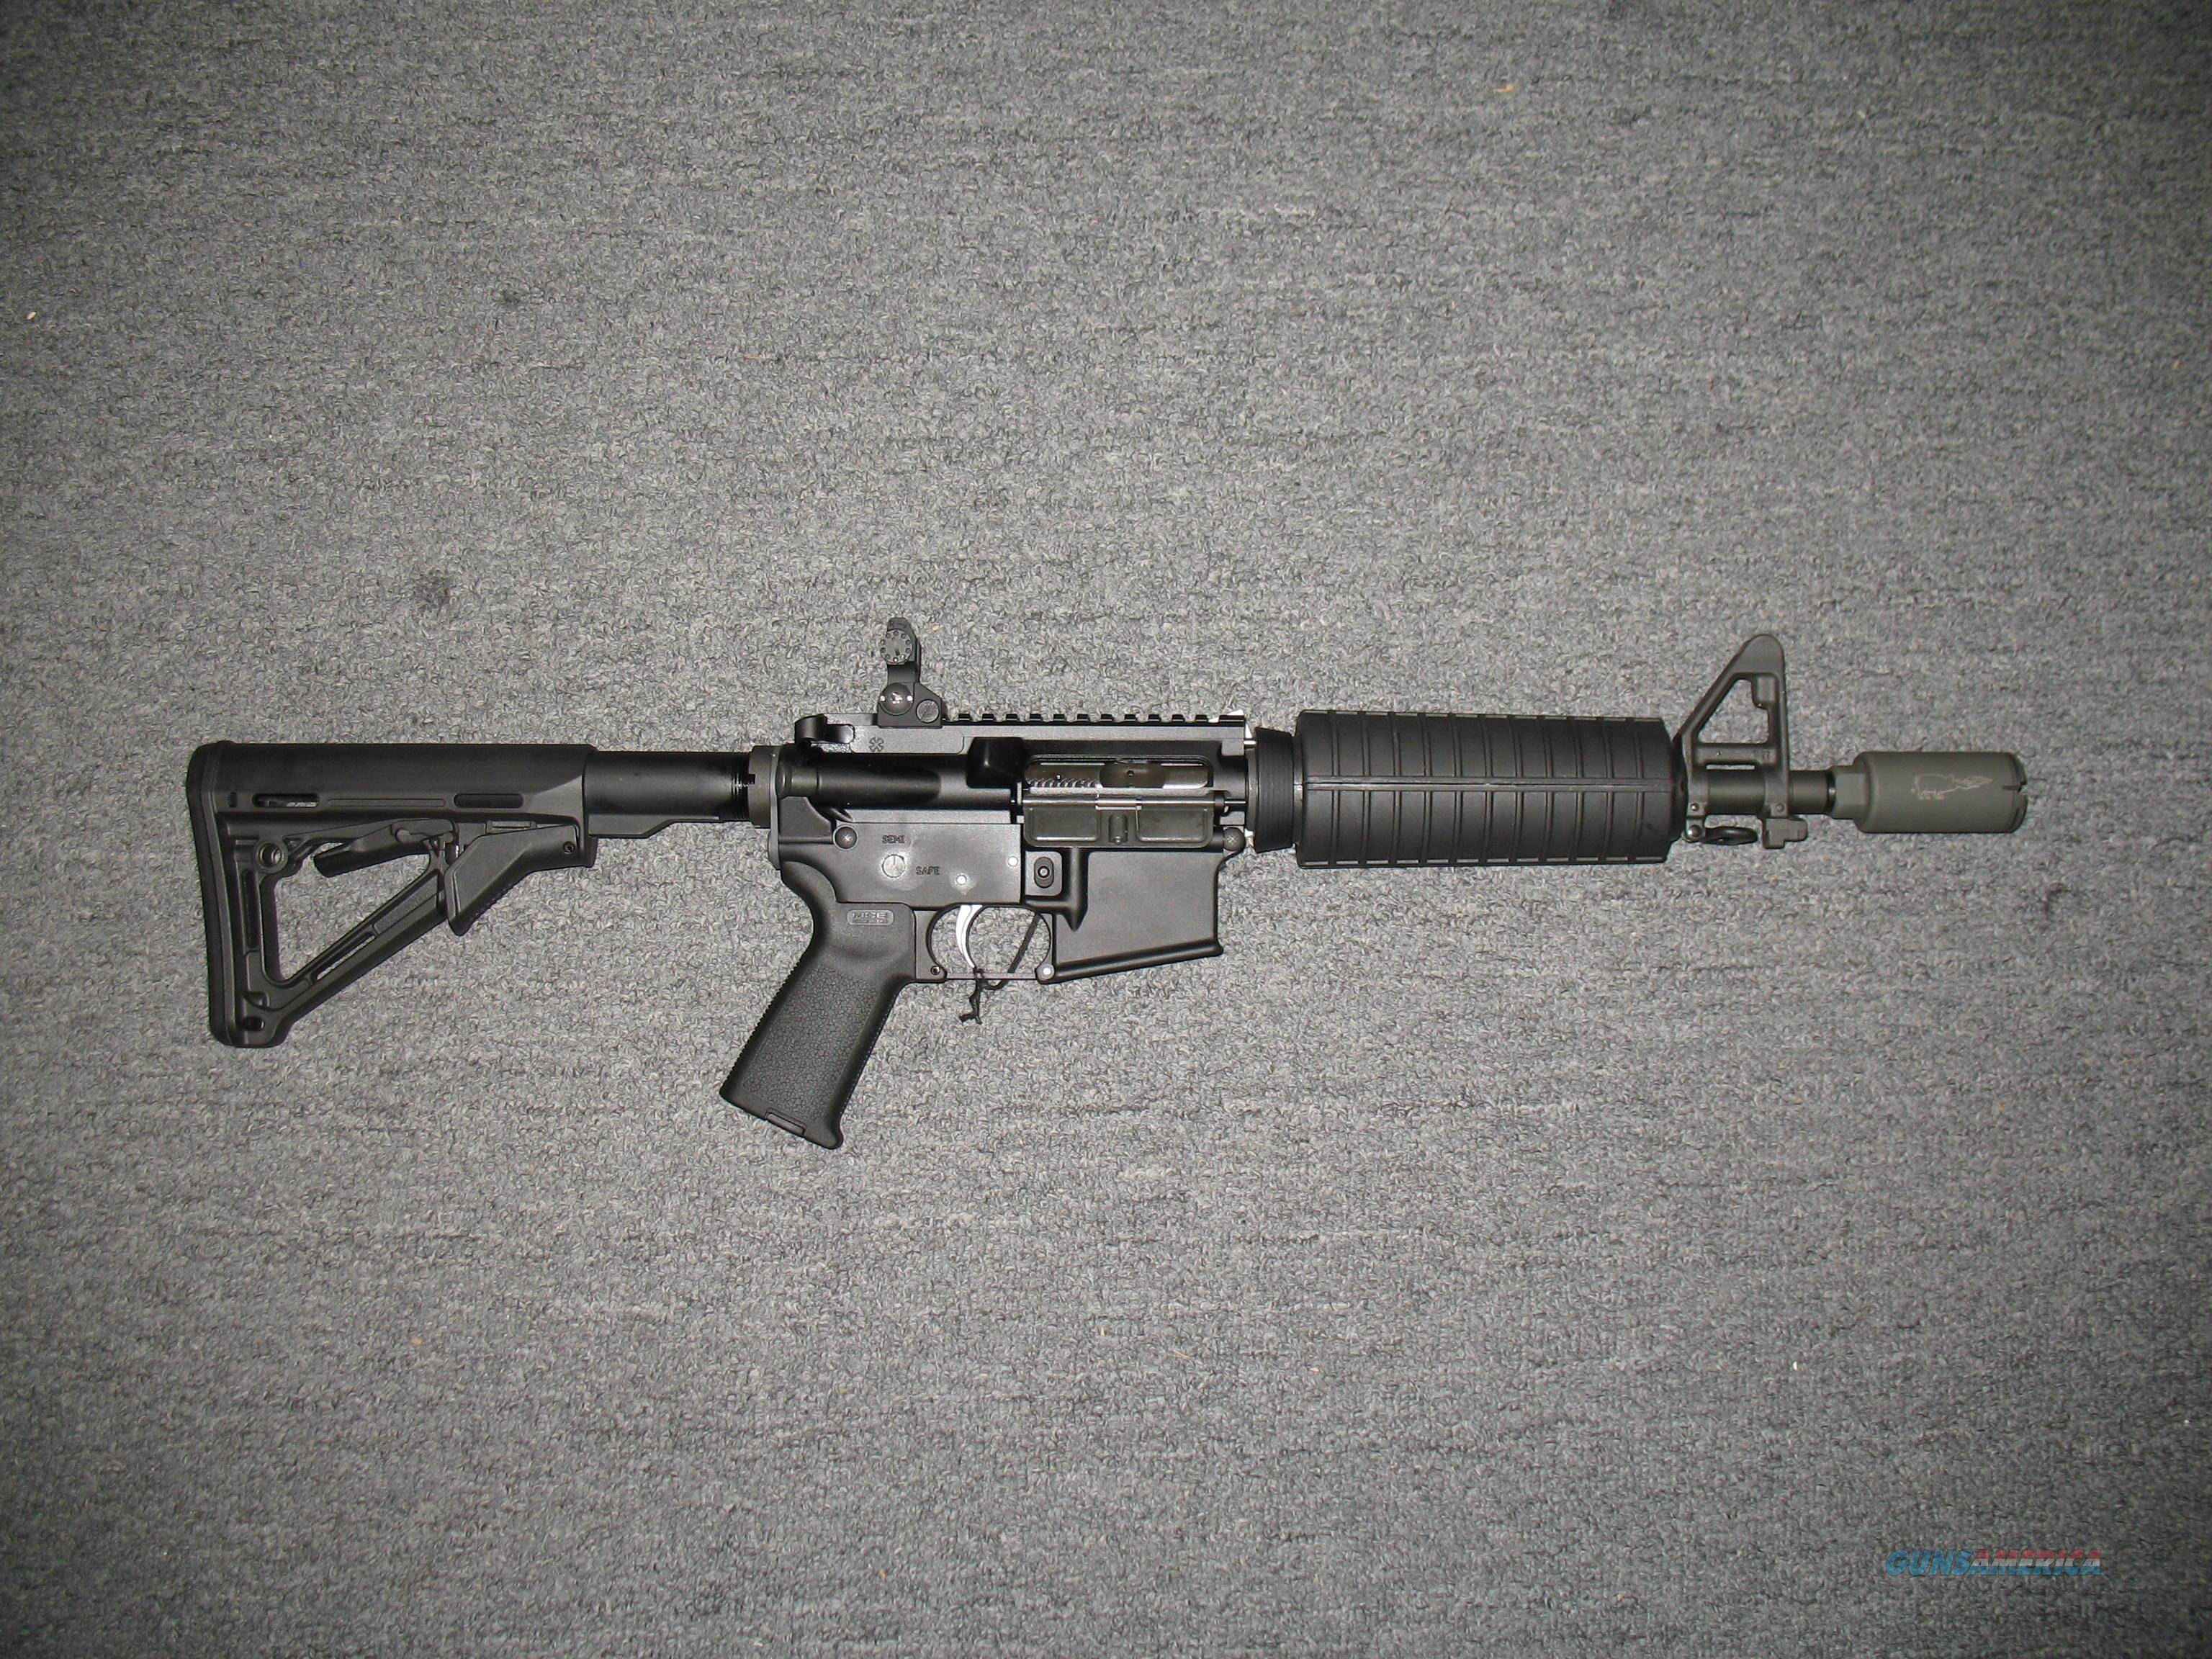 "Noveske N4 CLASS III SBR w/10.5"" bbl., Flaming Pig flash suppressor  Guns > Rifles > AR-15 Rifles - Small Manufacturers > Complete Rifle"